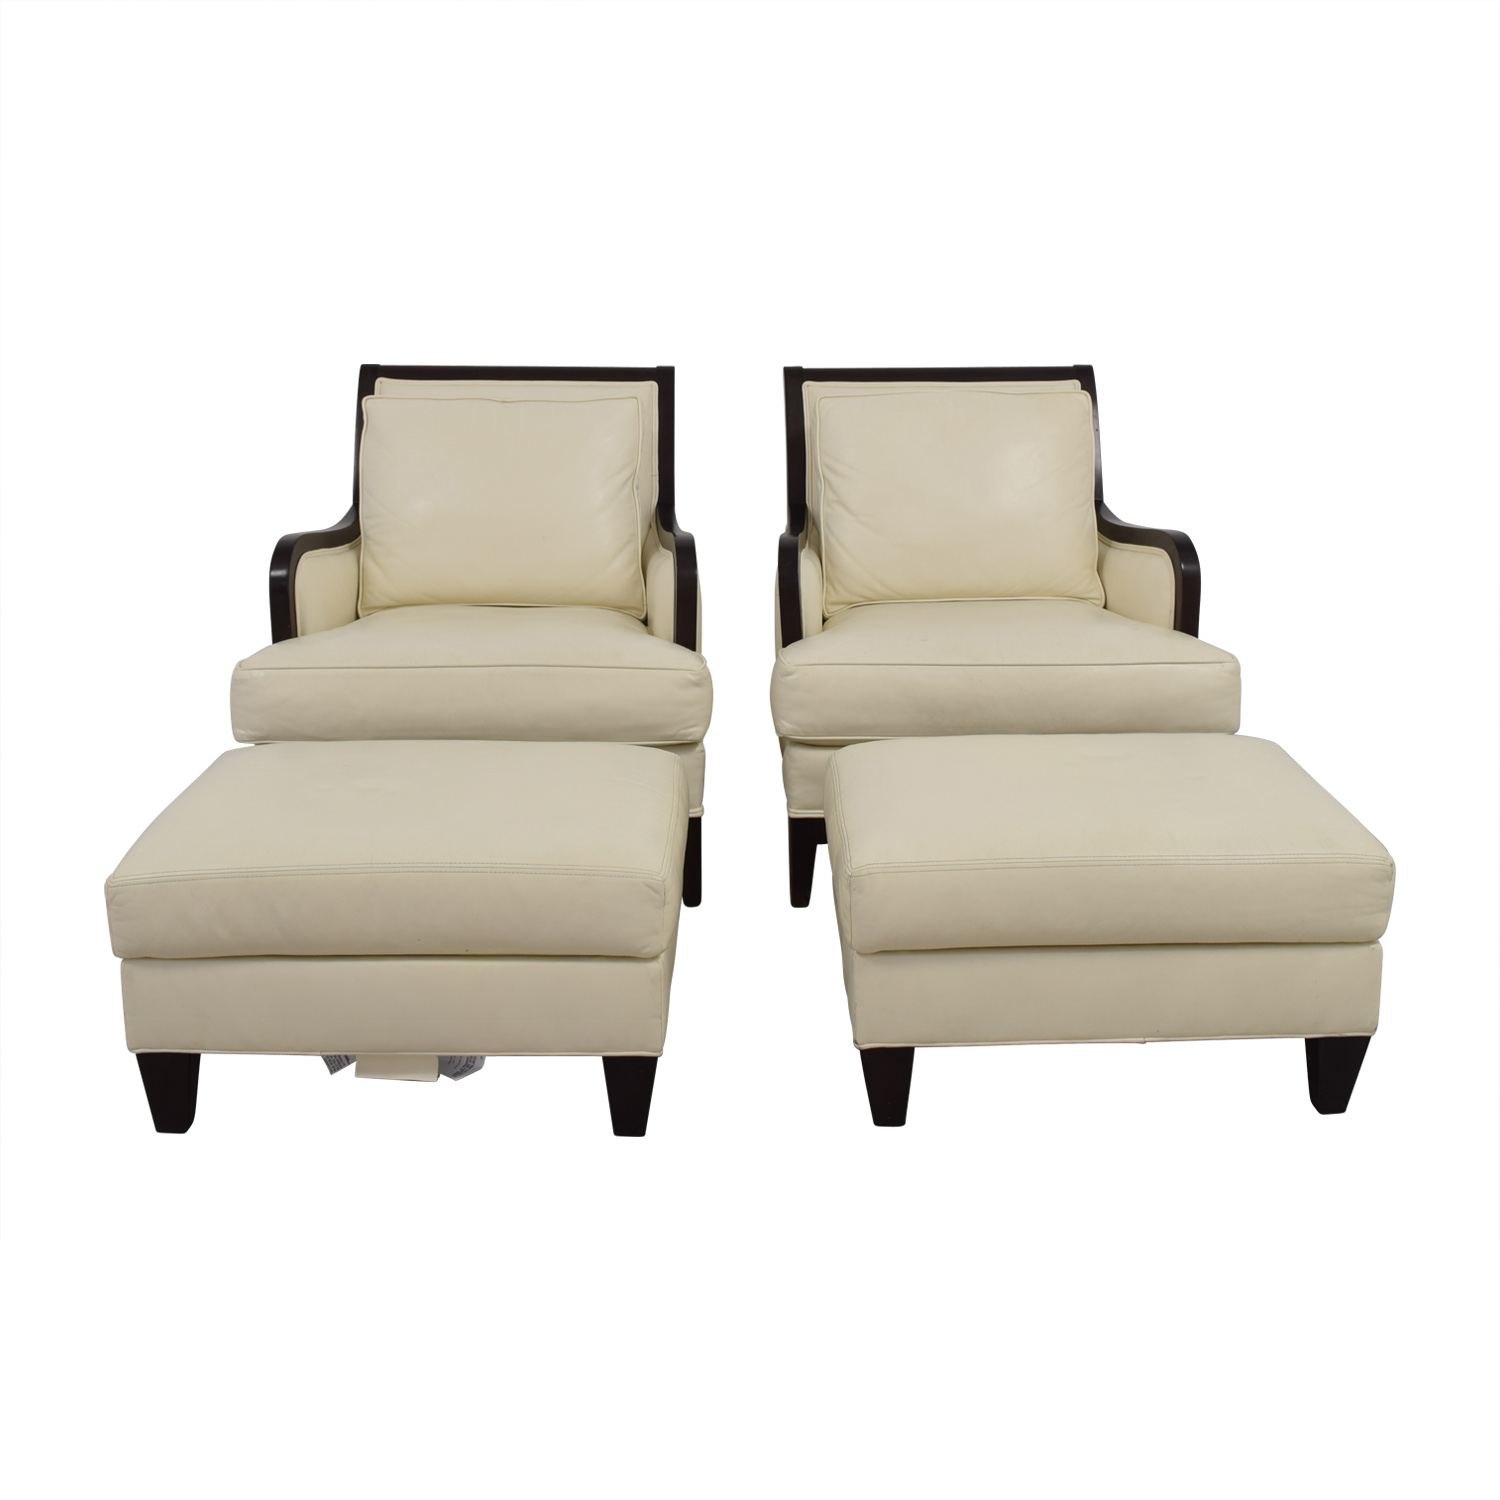 Ethan Allen Ethan Allen Palma Ivory Leather Chairs with Ottomans nyc